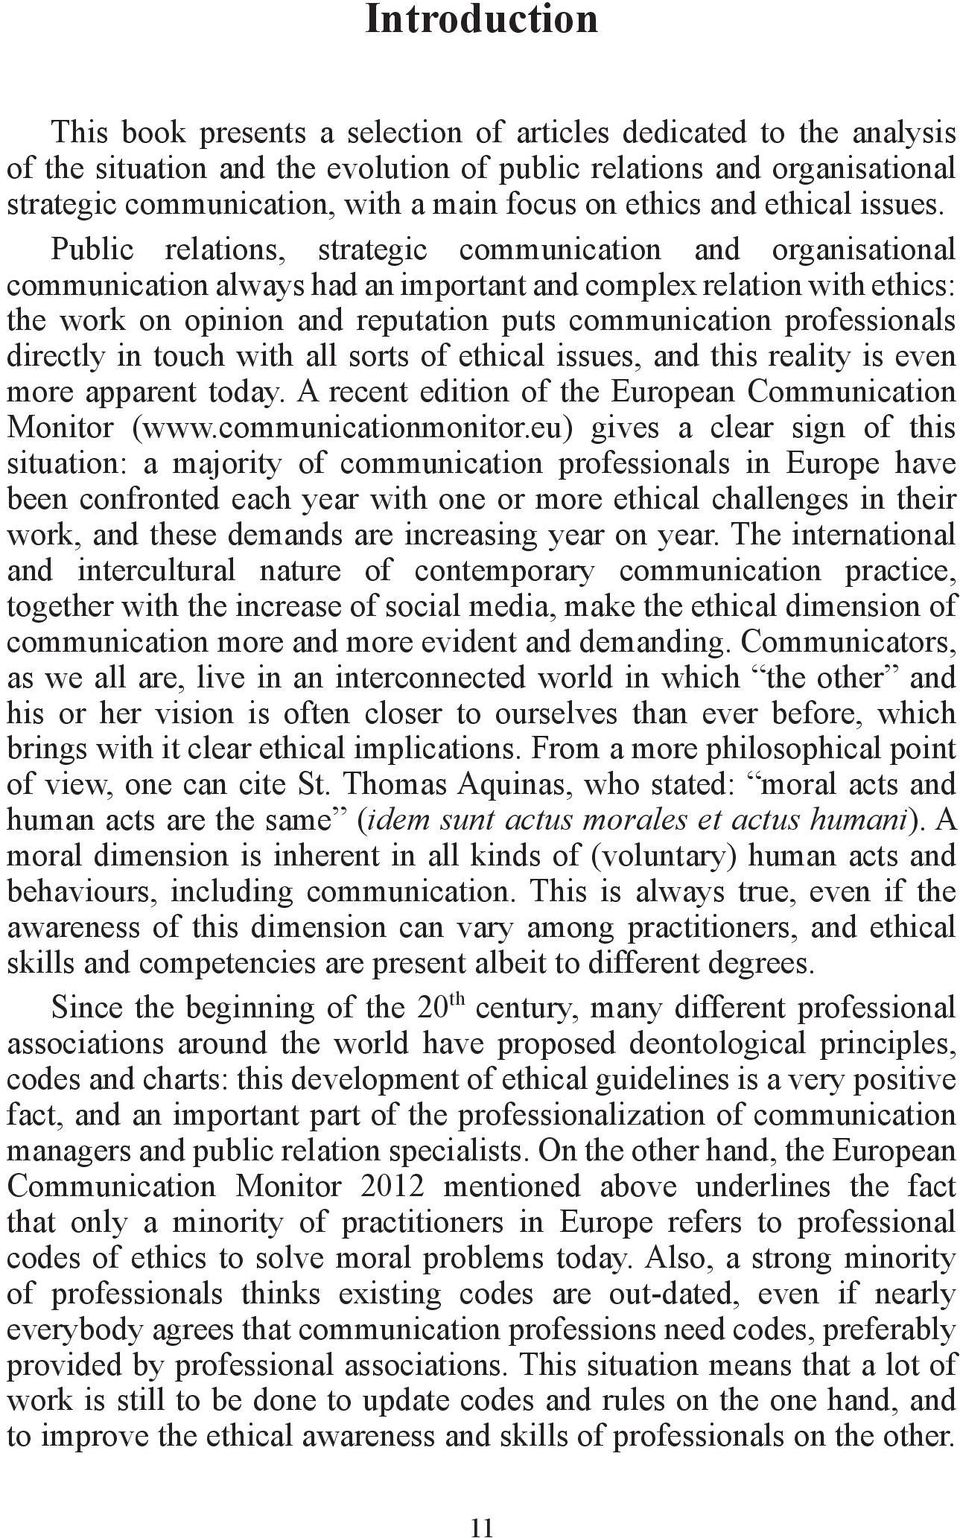 Public relations, strategic communication and organisational communication always had an important and complex relation with ethics: the work on opinion and reputation puts communication